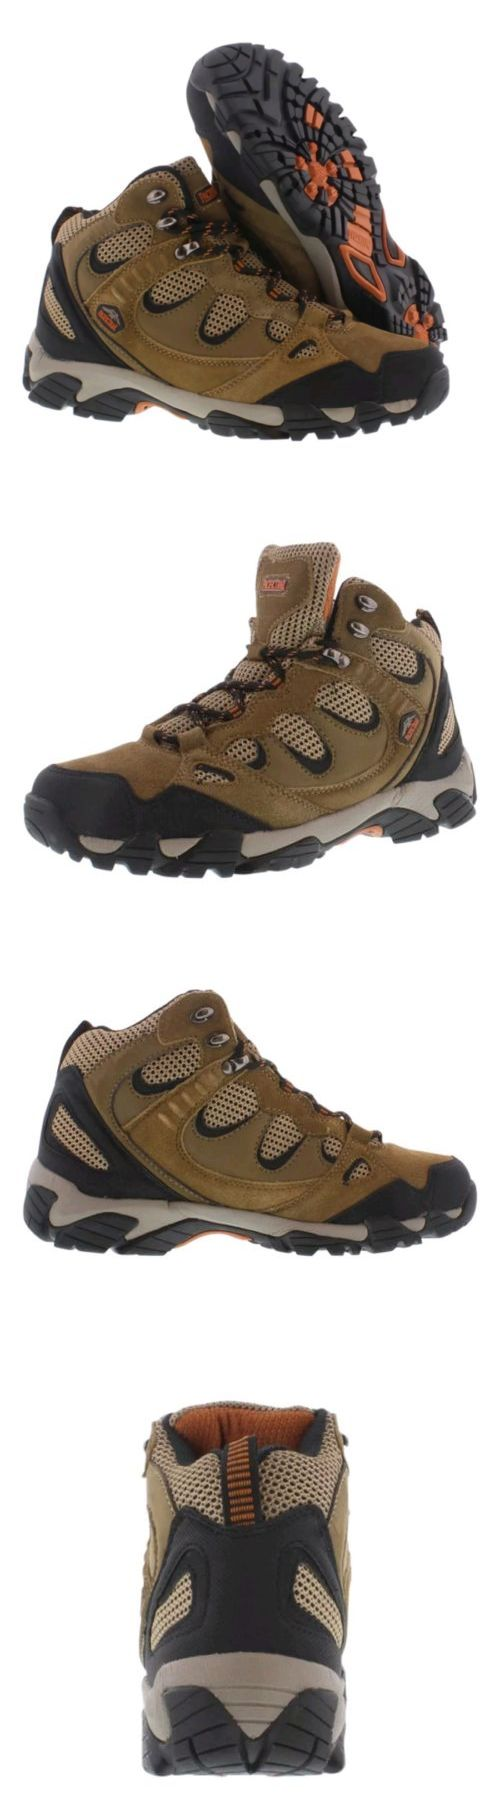 Mens 181392: Pacific Trail Sequoia Hiking Boot Men S Shoes Size 13 Smokey Brown Orange -> BUY IT NOW ONLY: $39.95 on eBay!